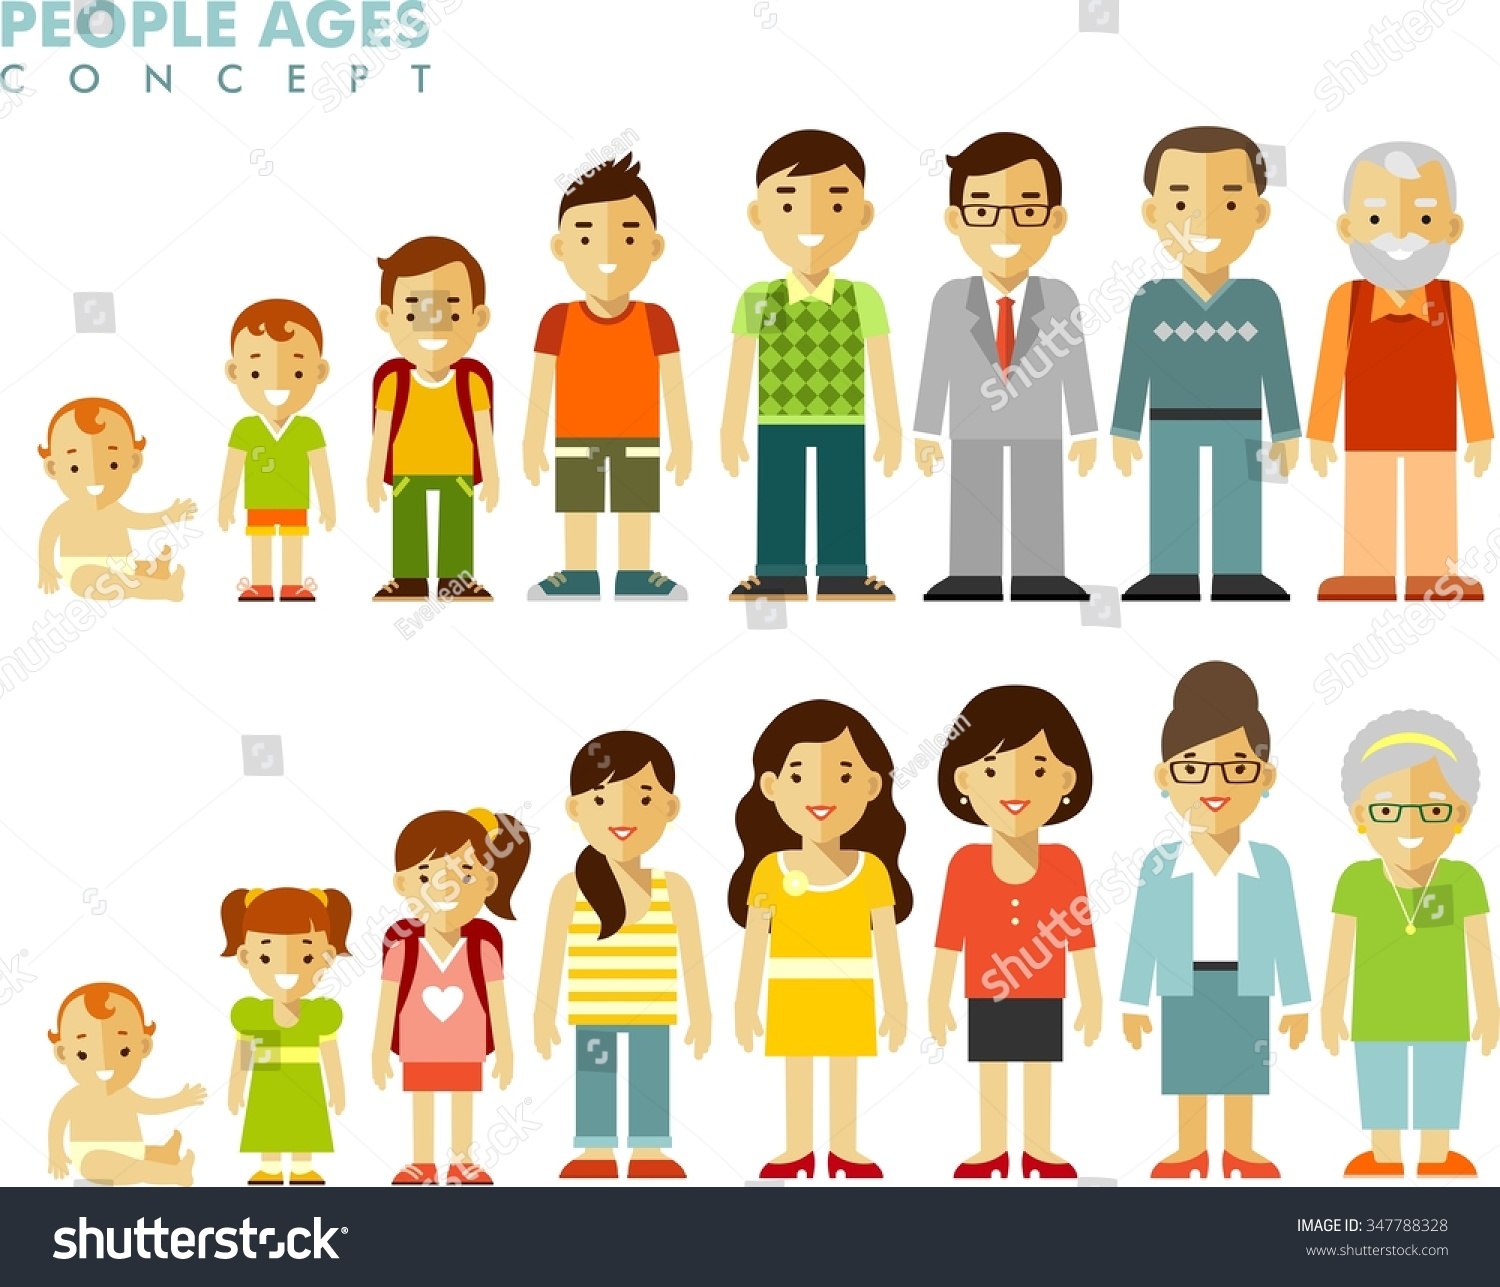 middle life and aging Start studying chapter 5 learn vocabulary d middle adulthood longitudinal research indicated that during this period of life, aging is associated with.